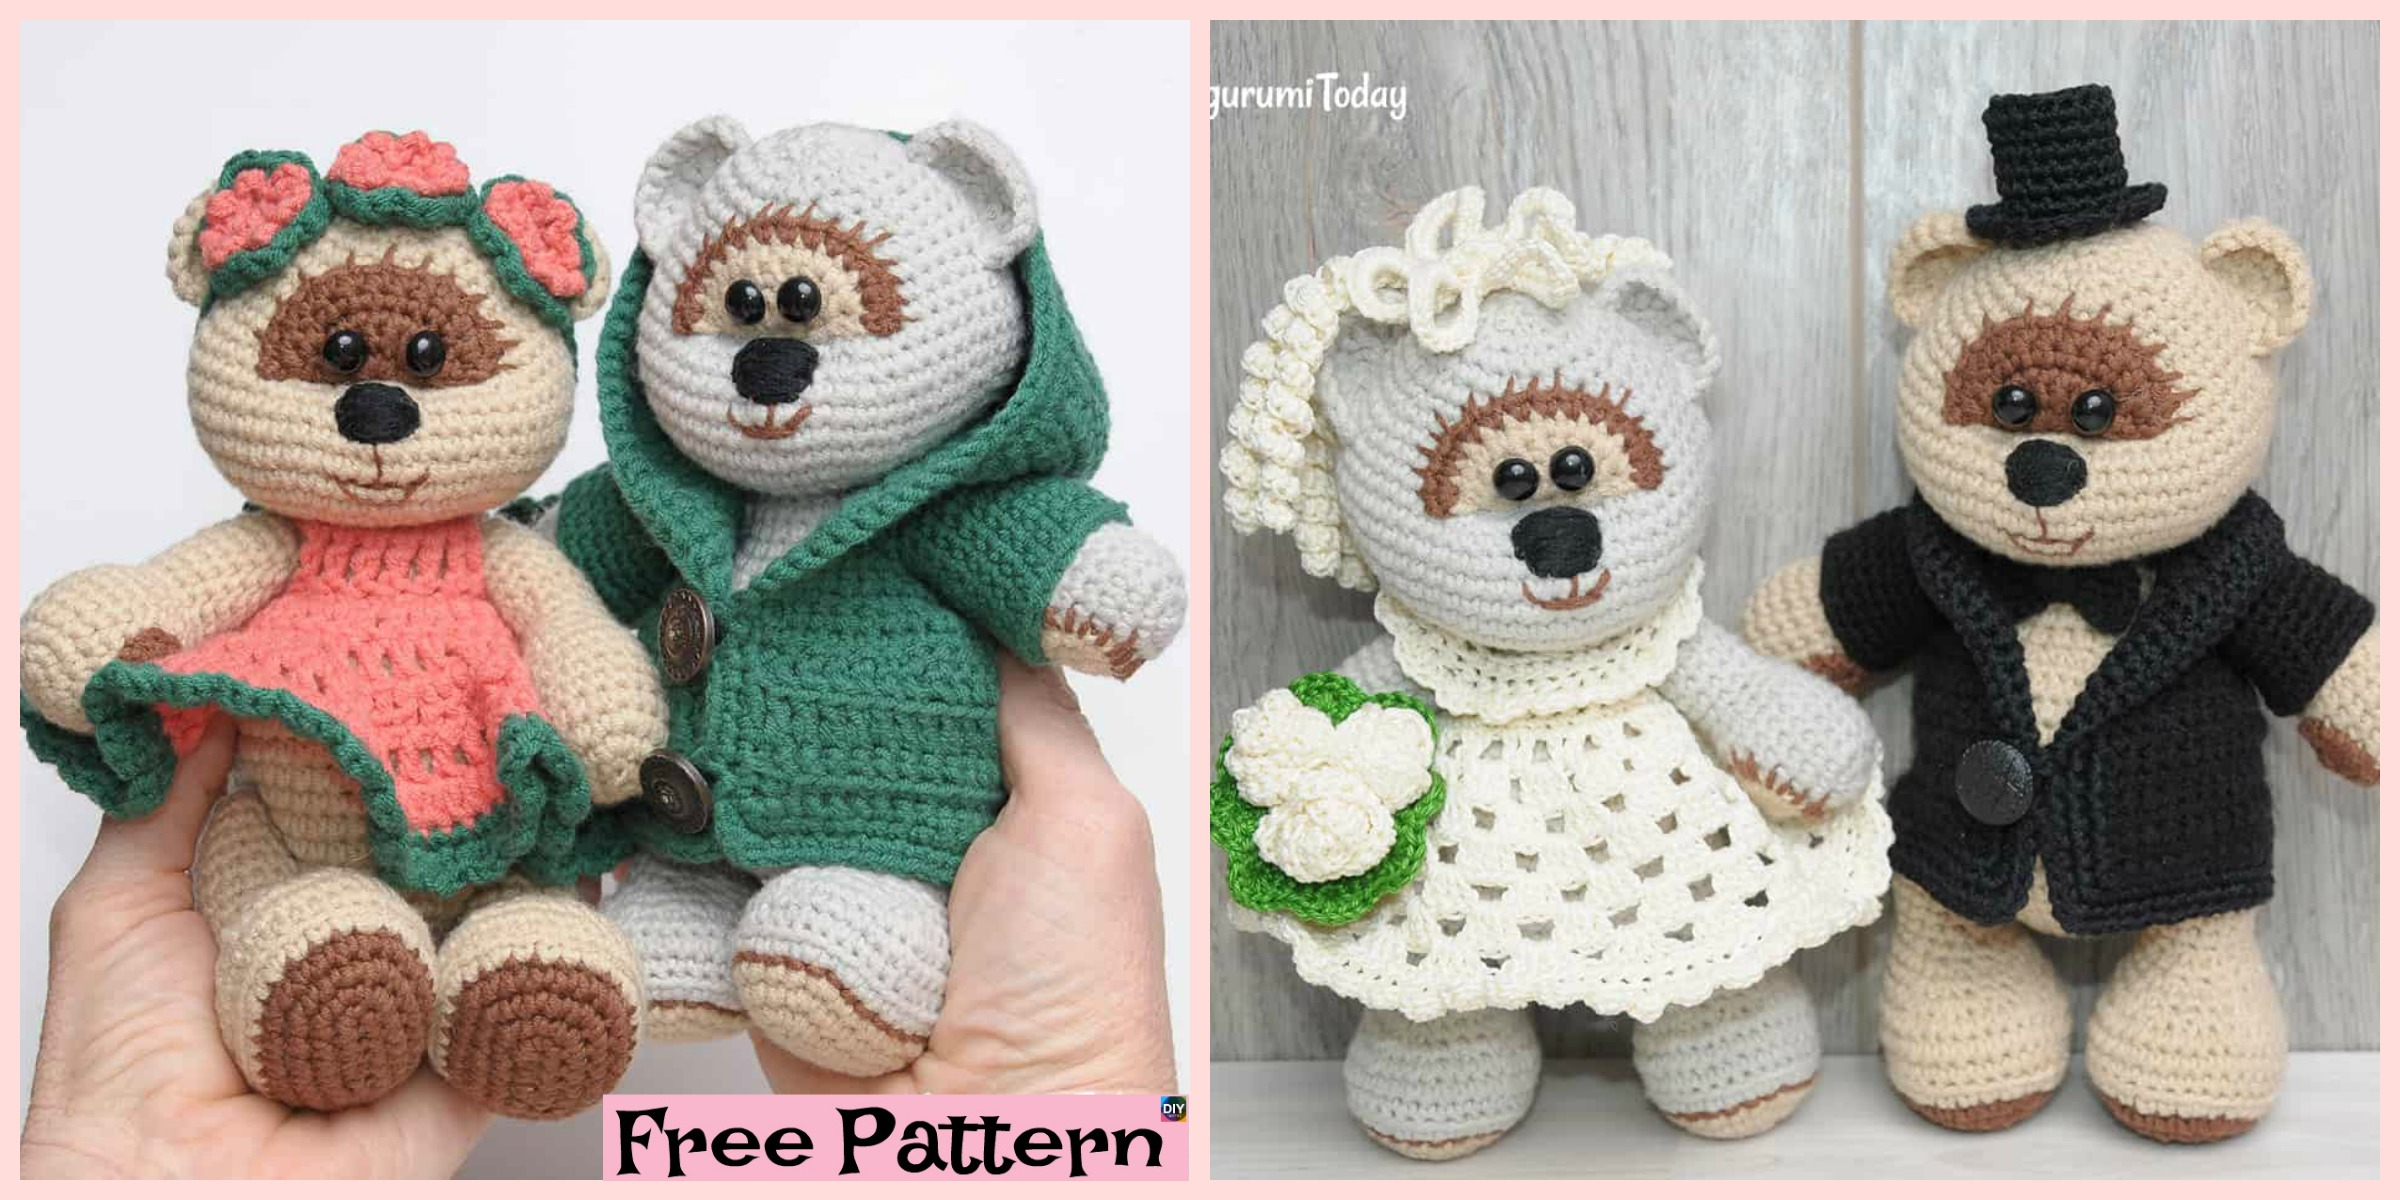 Sweet Crochet Teddy Bear – Free Patterns